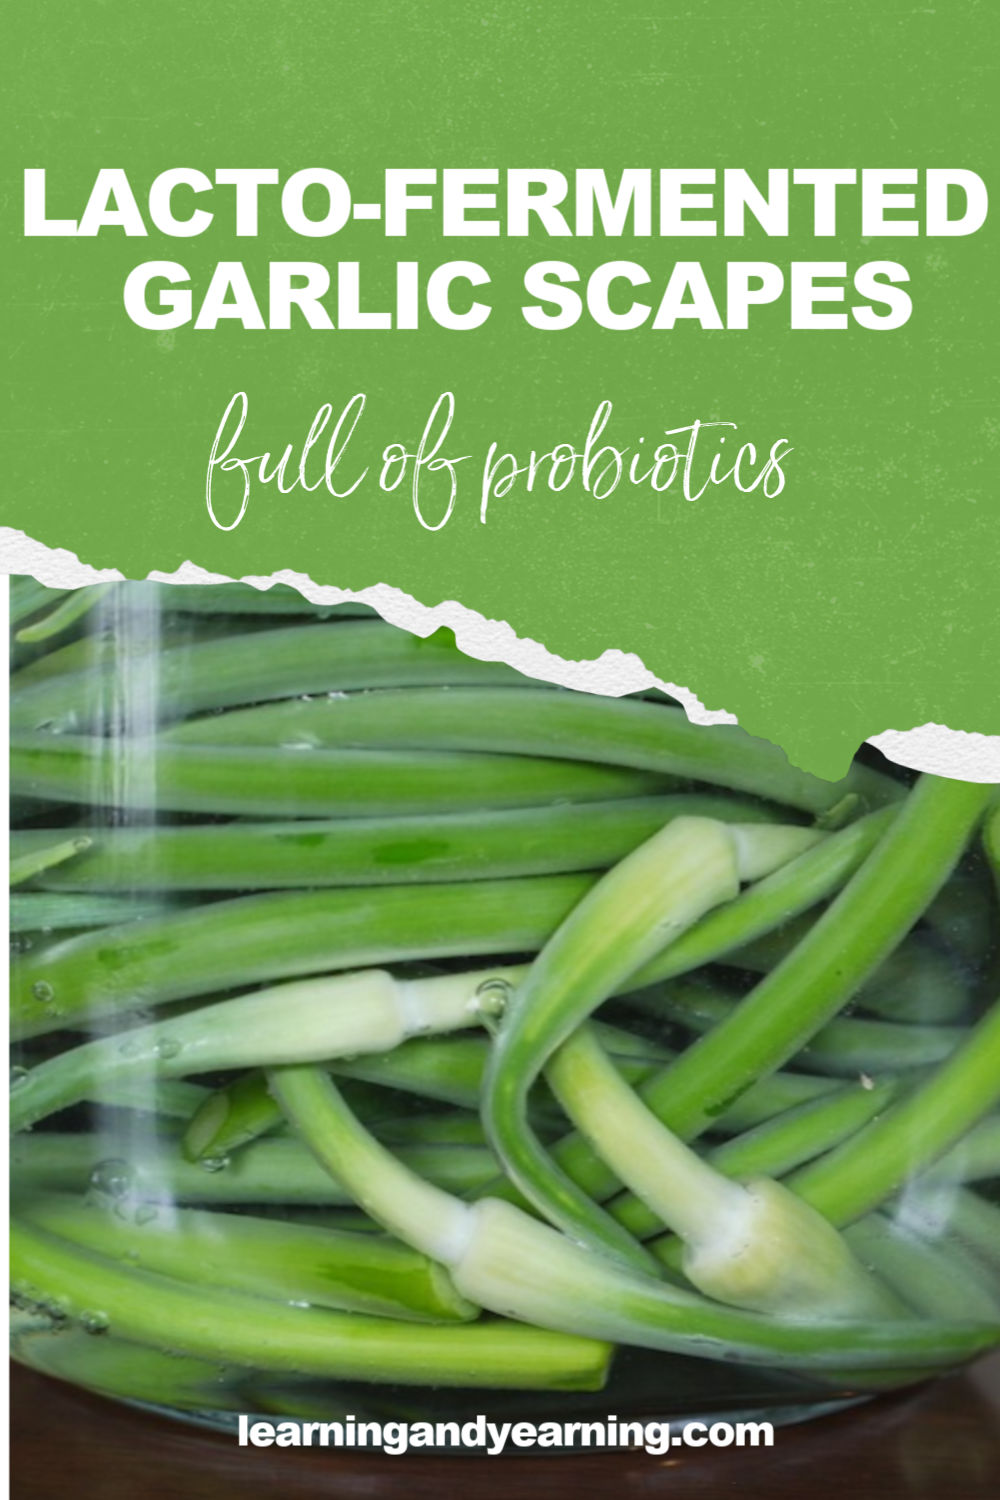 Lacto-fermented garlic scapes - a great way to preserve the scapes and add probiotics to your diet.